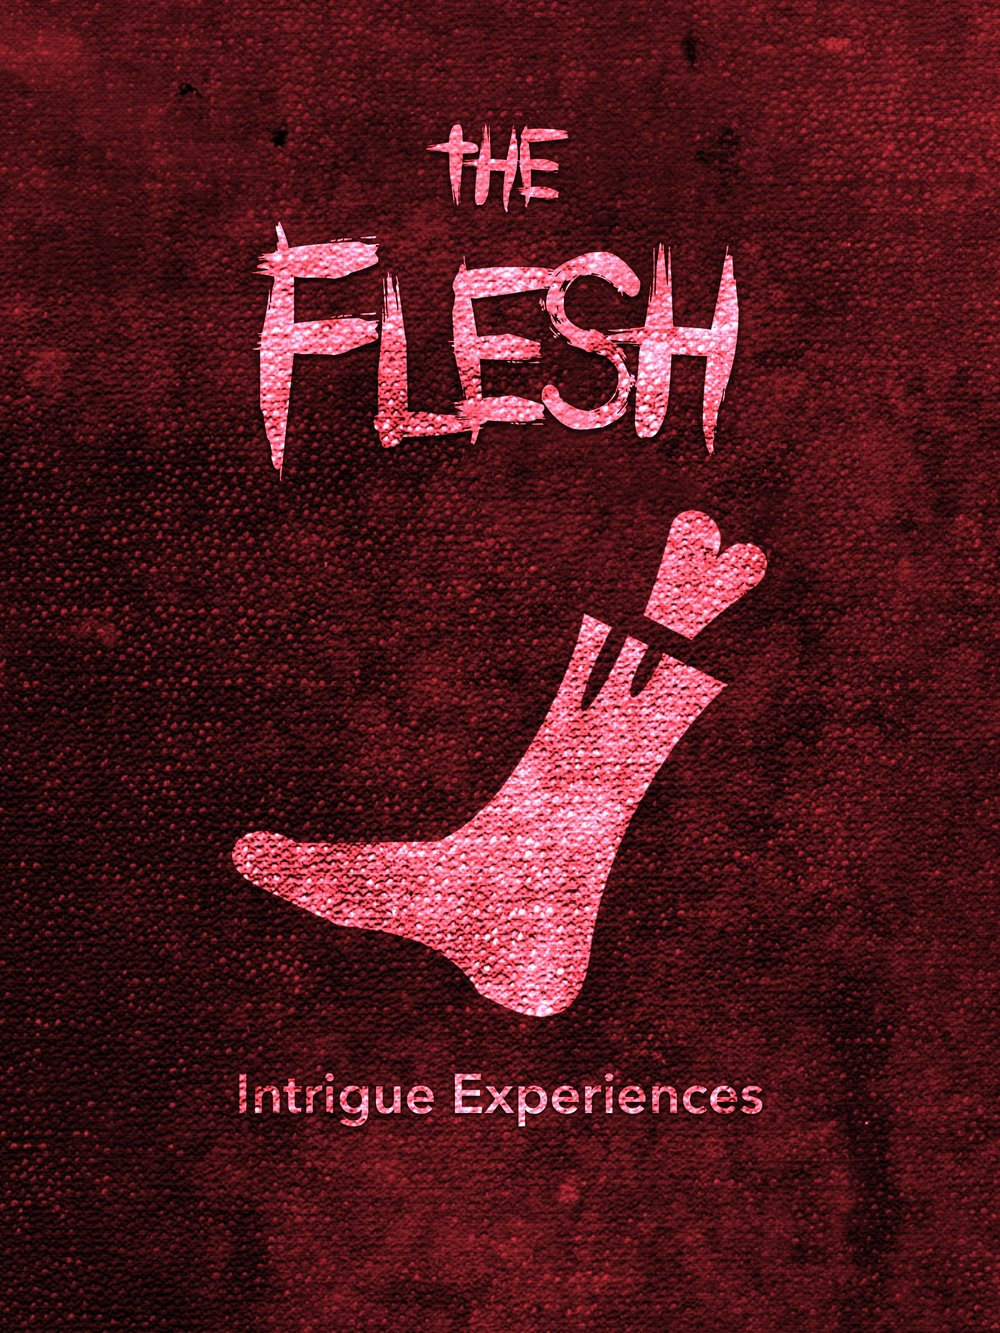 The Flesh was originally produced for CONTAINMENT, a haunted attraction created through Frightmare Farms. Many vials of a dangerous substance were left behind in a contaminated medical ward. Get in and retrieve as many as you can, but avoid the patient that is loose within.  This story will be available during the 2018 haunting season at CONTAINMENT at Shoppingtown Mall in Syracuse, NY.